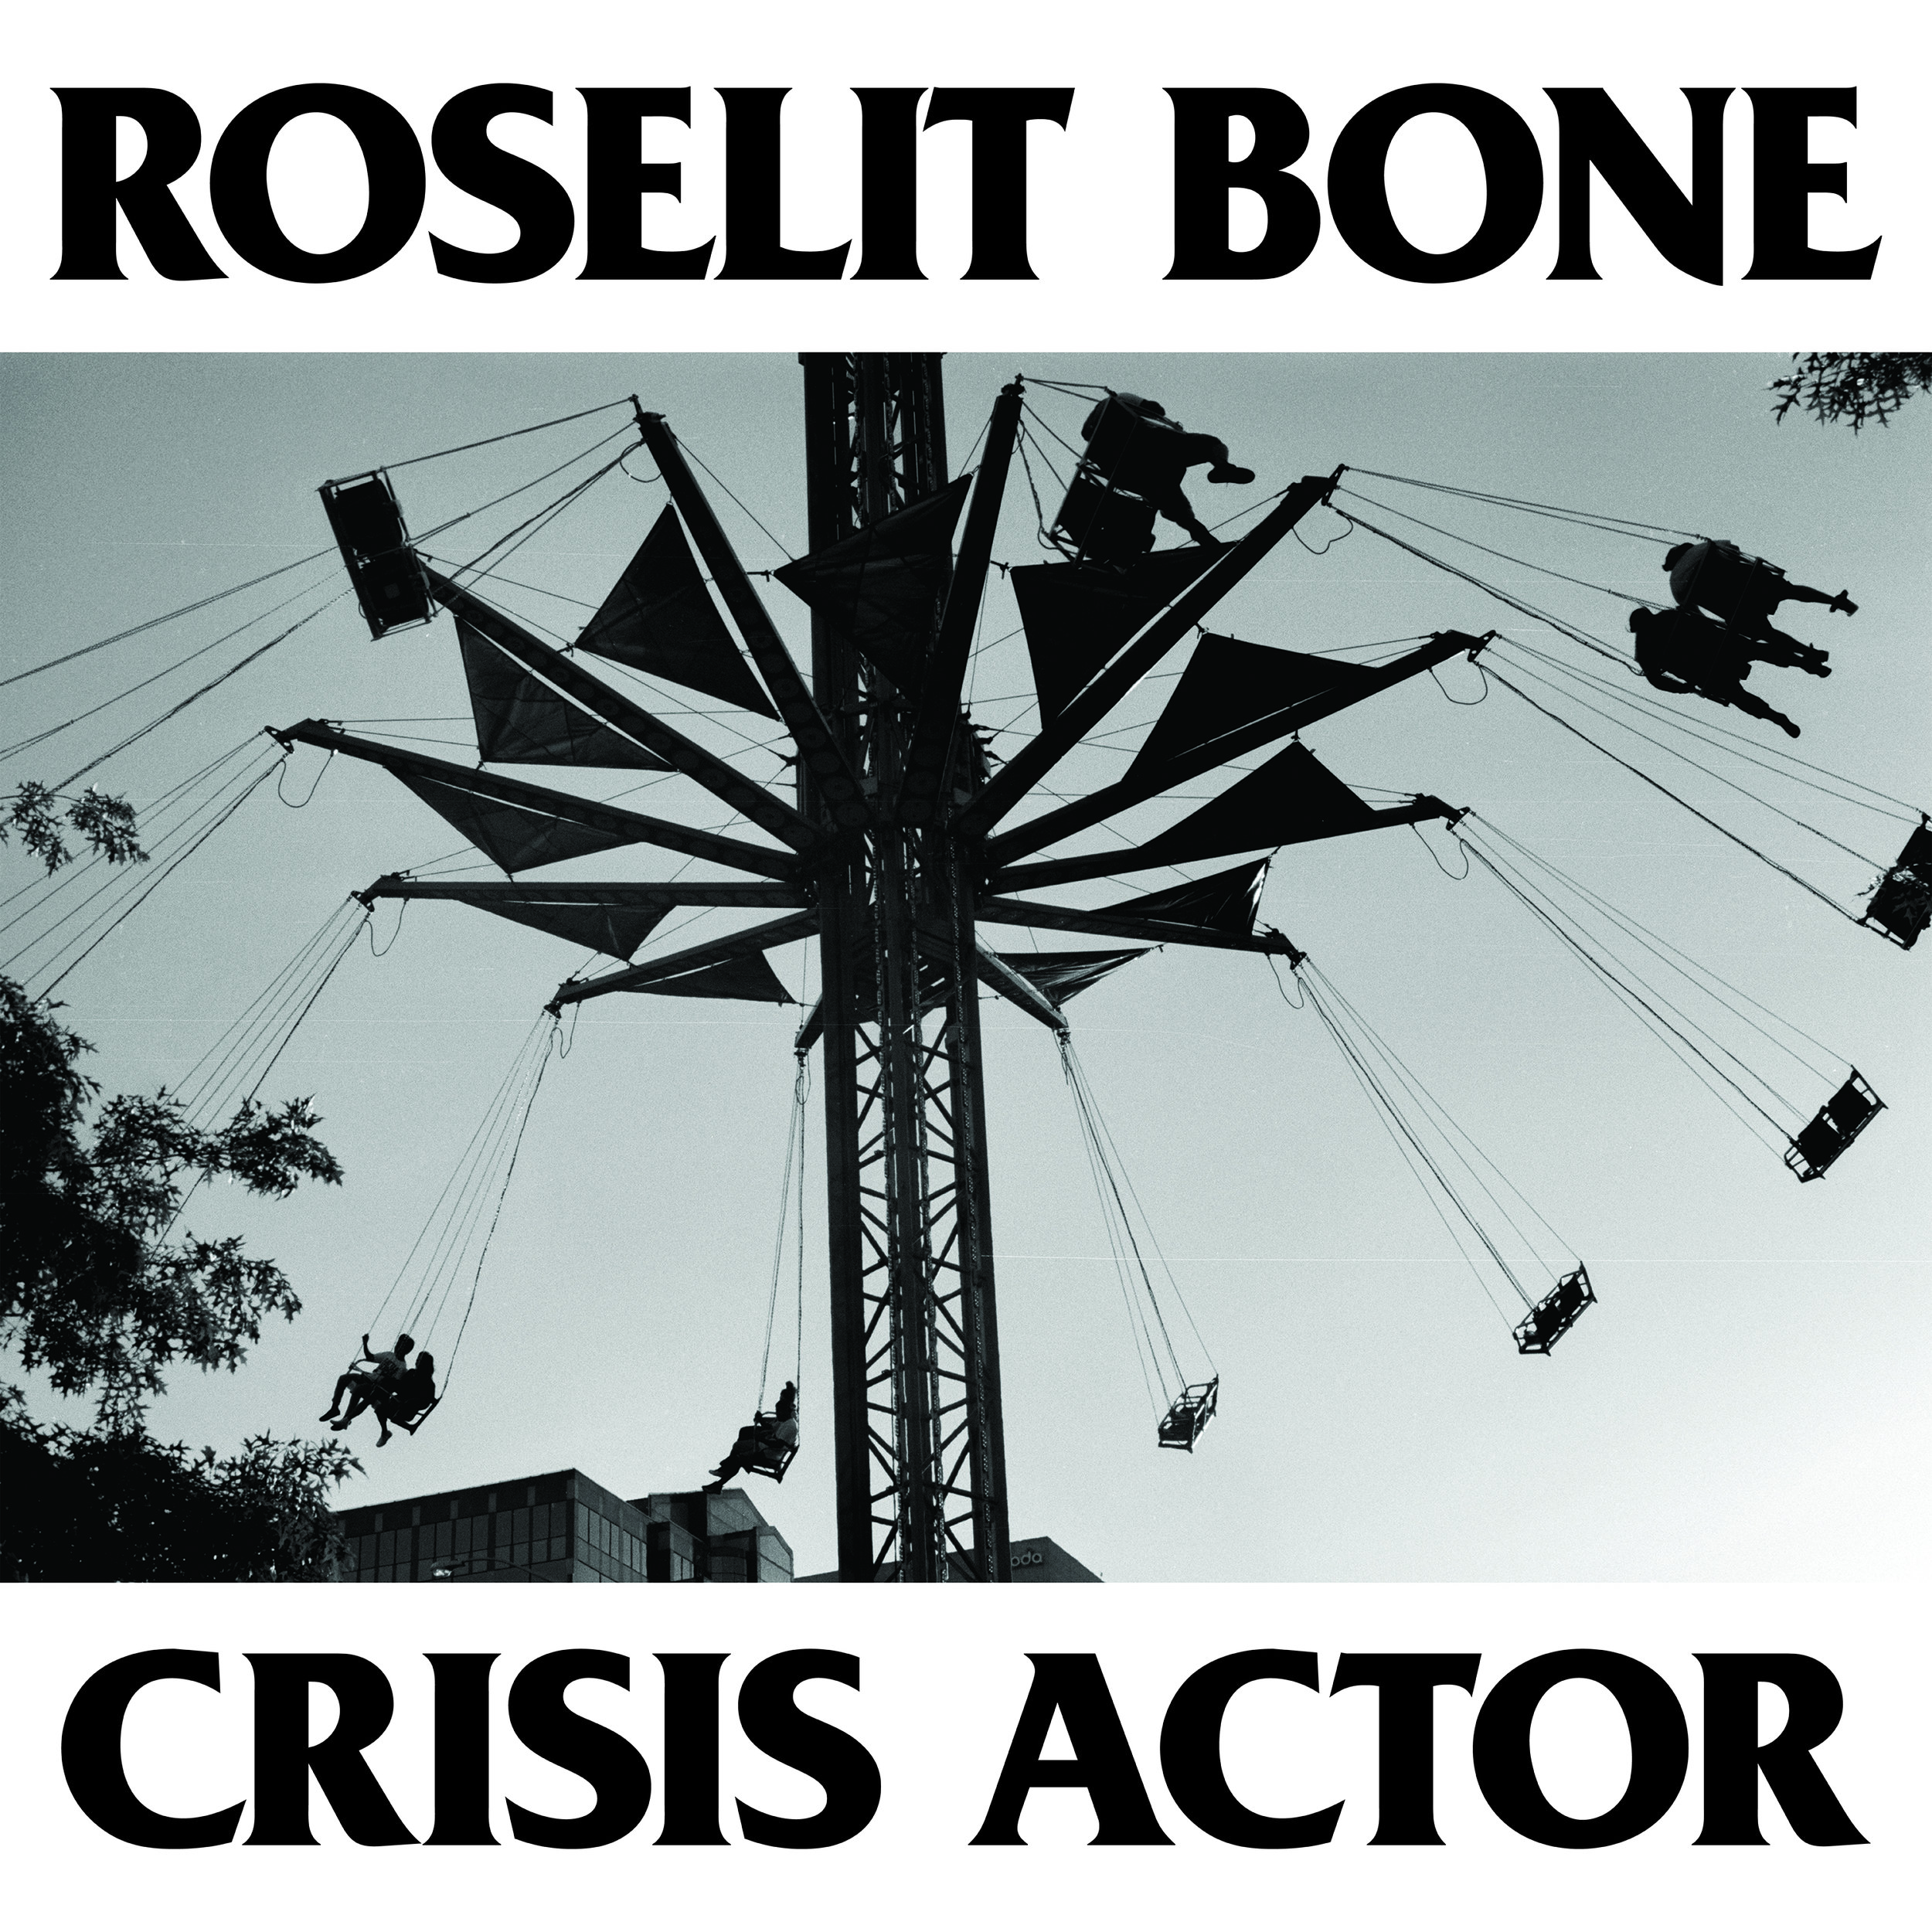 Roselit Bone Crisis Actor Cover CMYK.jpg